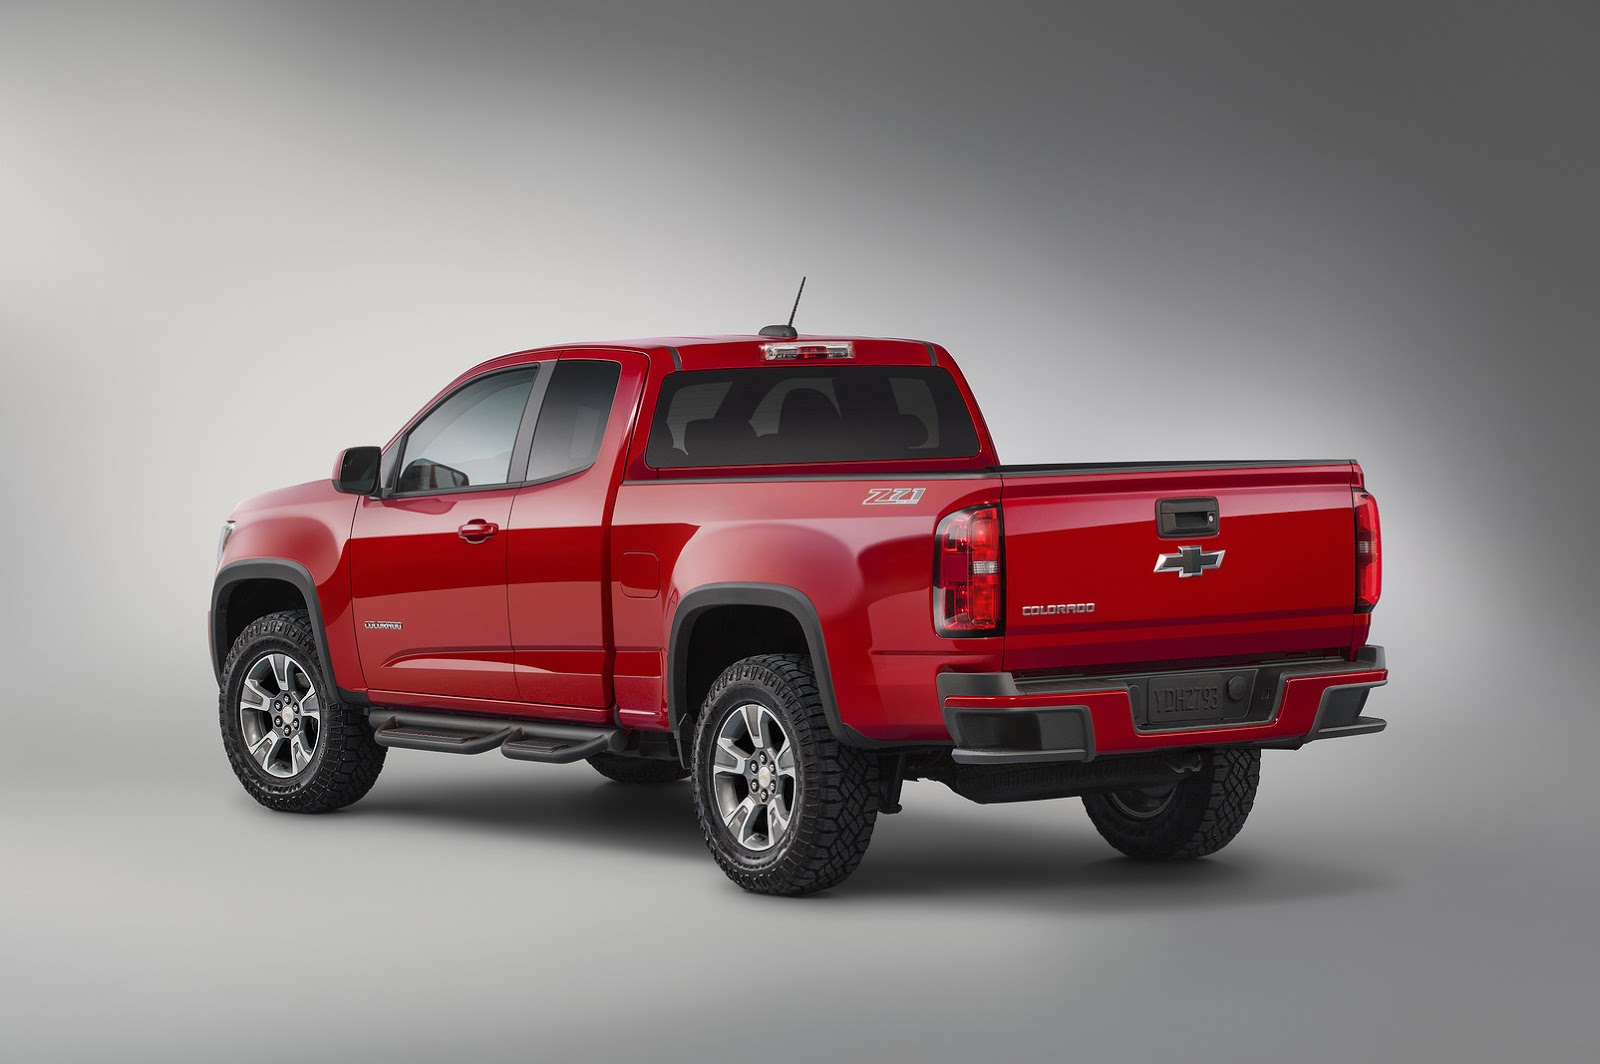 chevy styles up 2015 colorado with new z71 trail boss edition carscoops. Black Bedroom Furniture Sets. Home Design Ideas